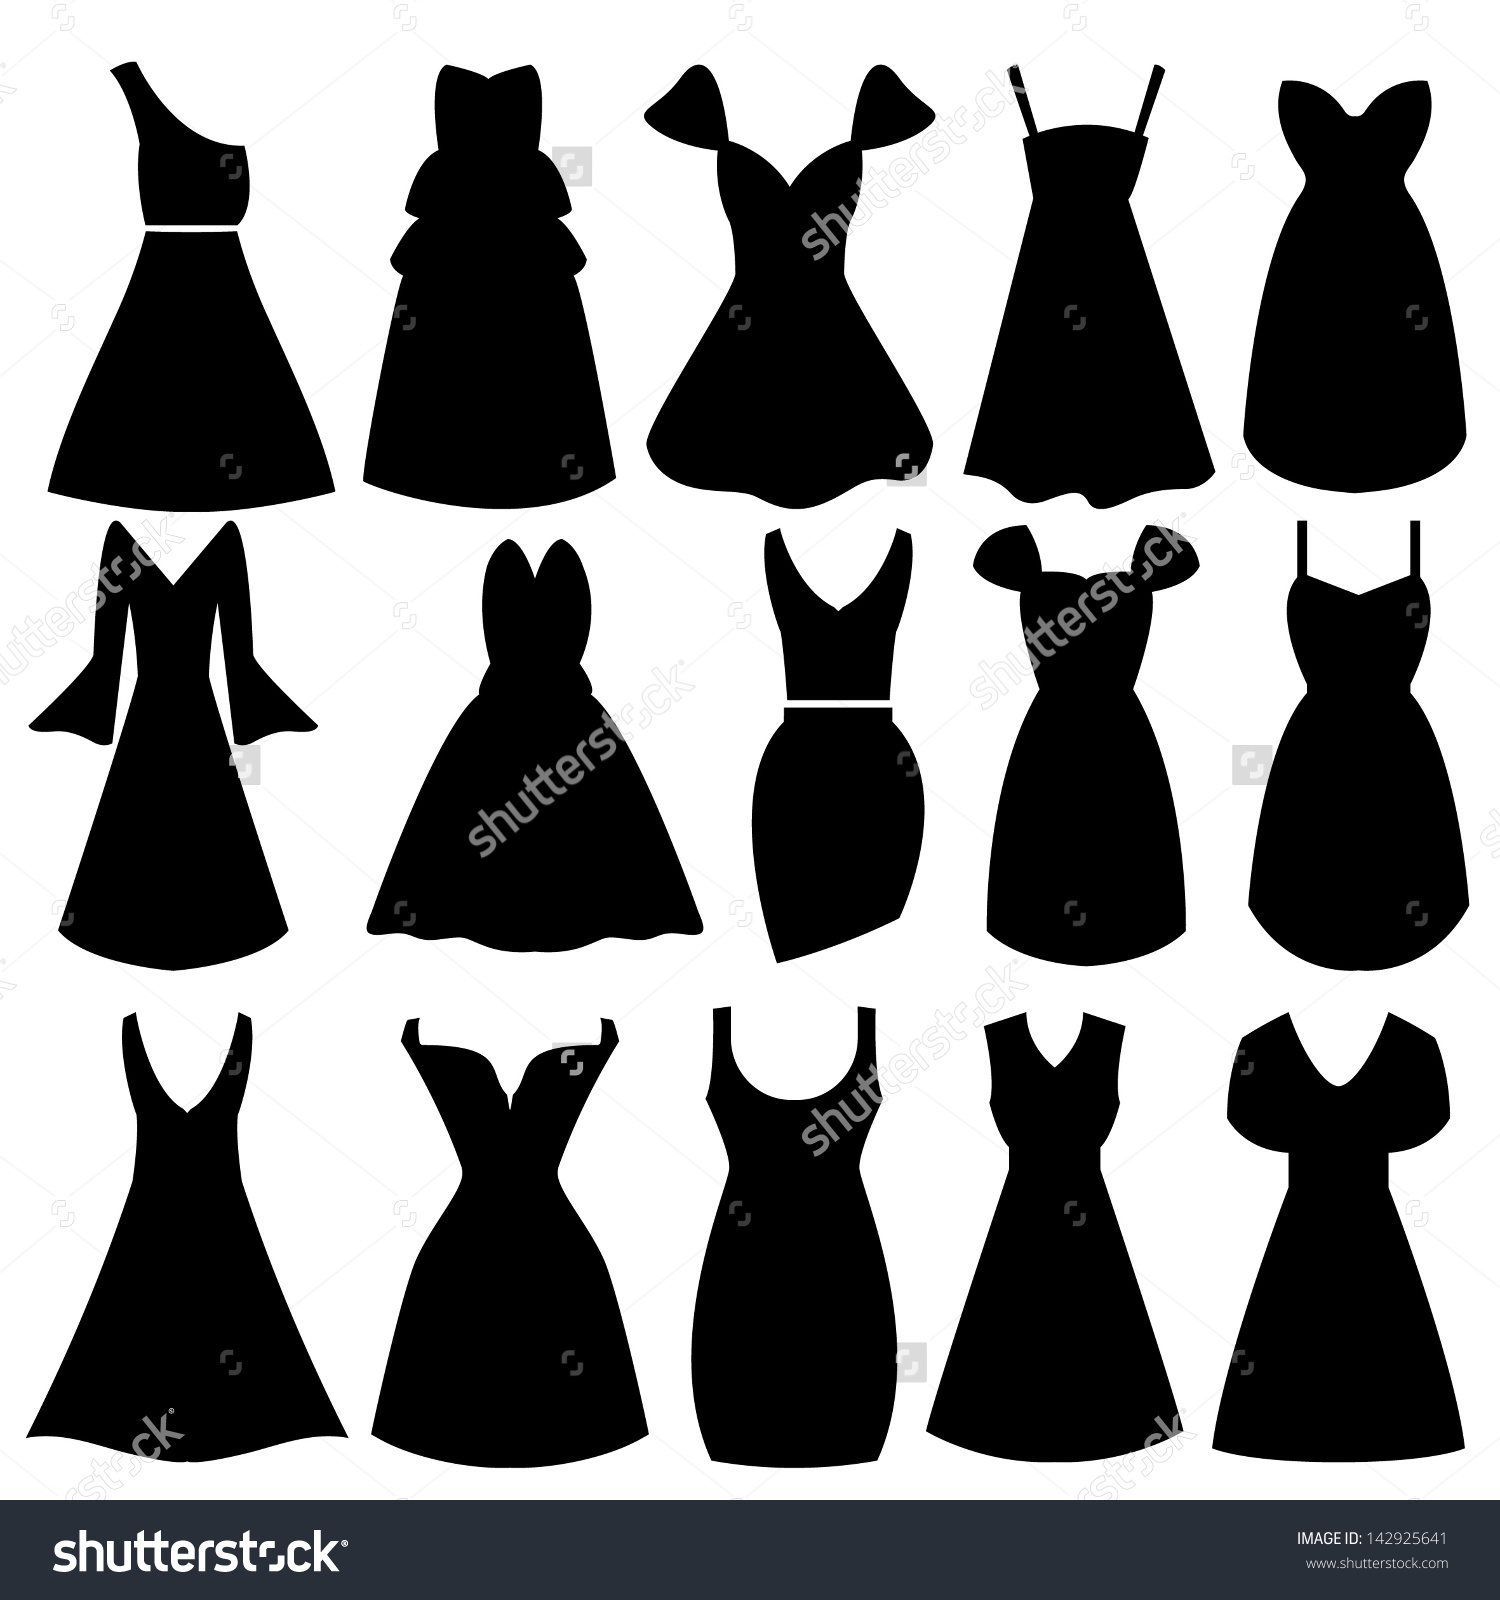 Vector Women Dress Silhouettes Stock Vector 142925641.